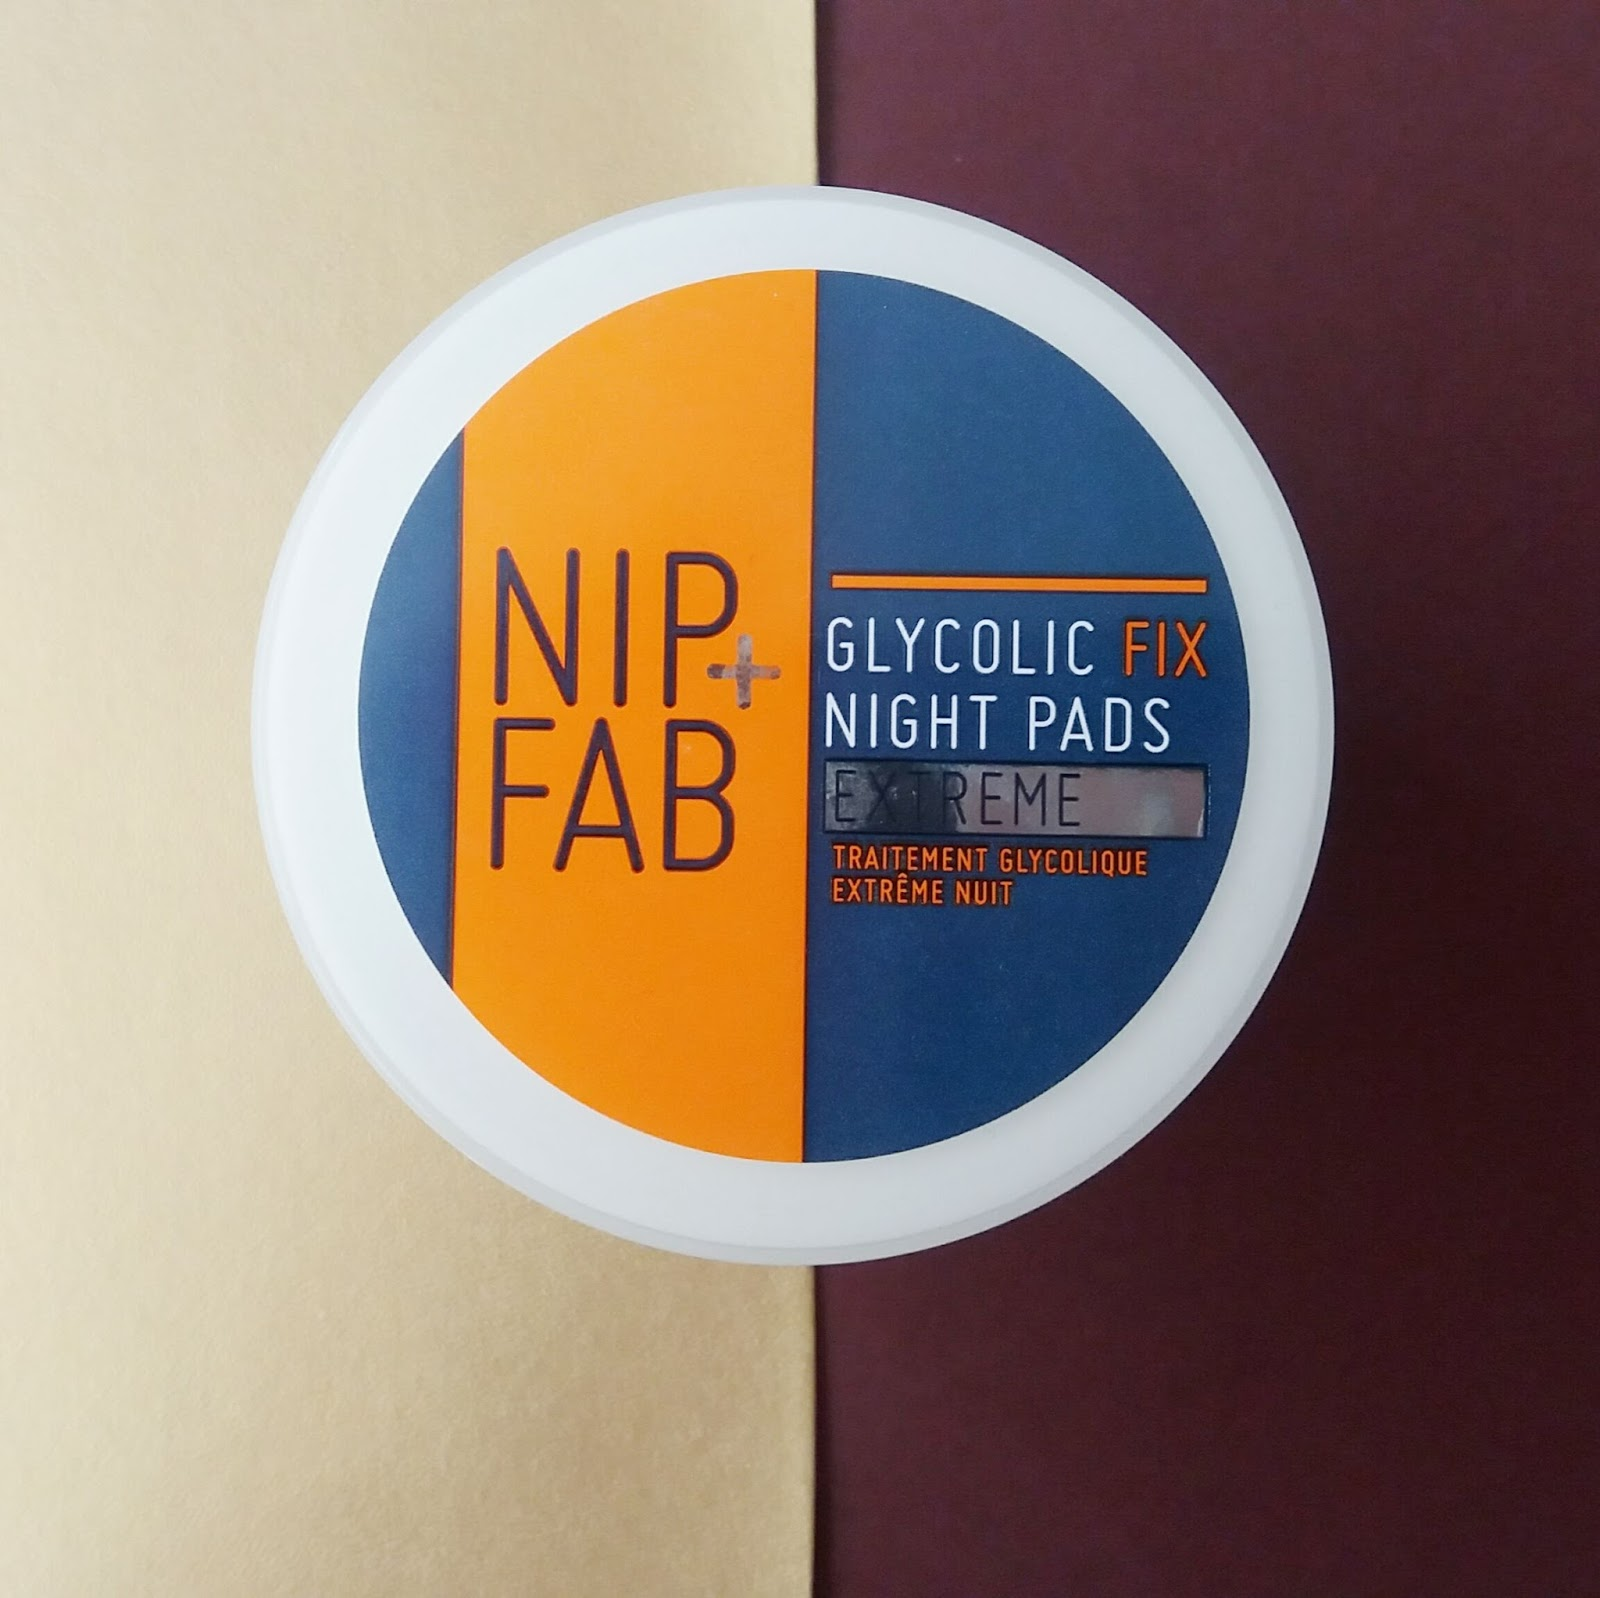 Nip + Fab Glycolic Fix Night Pads